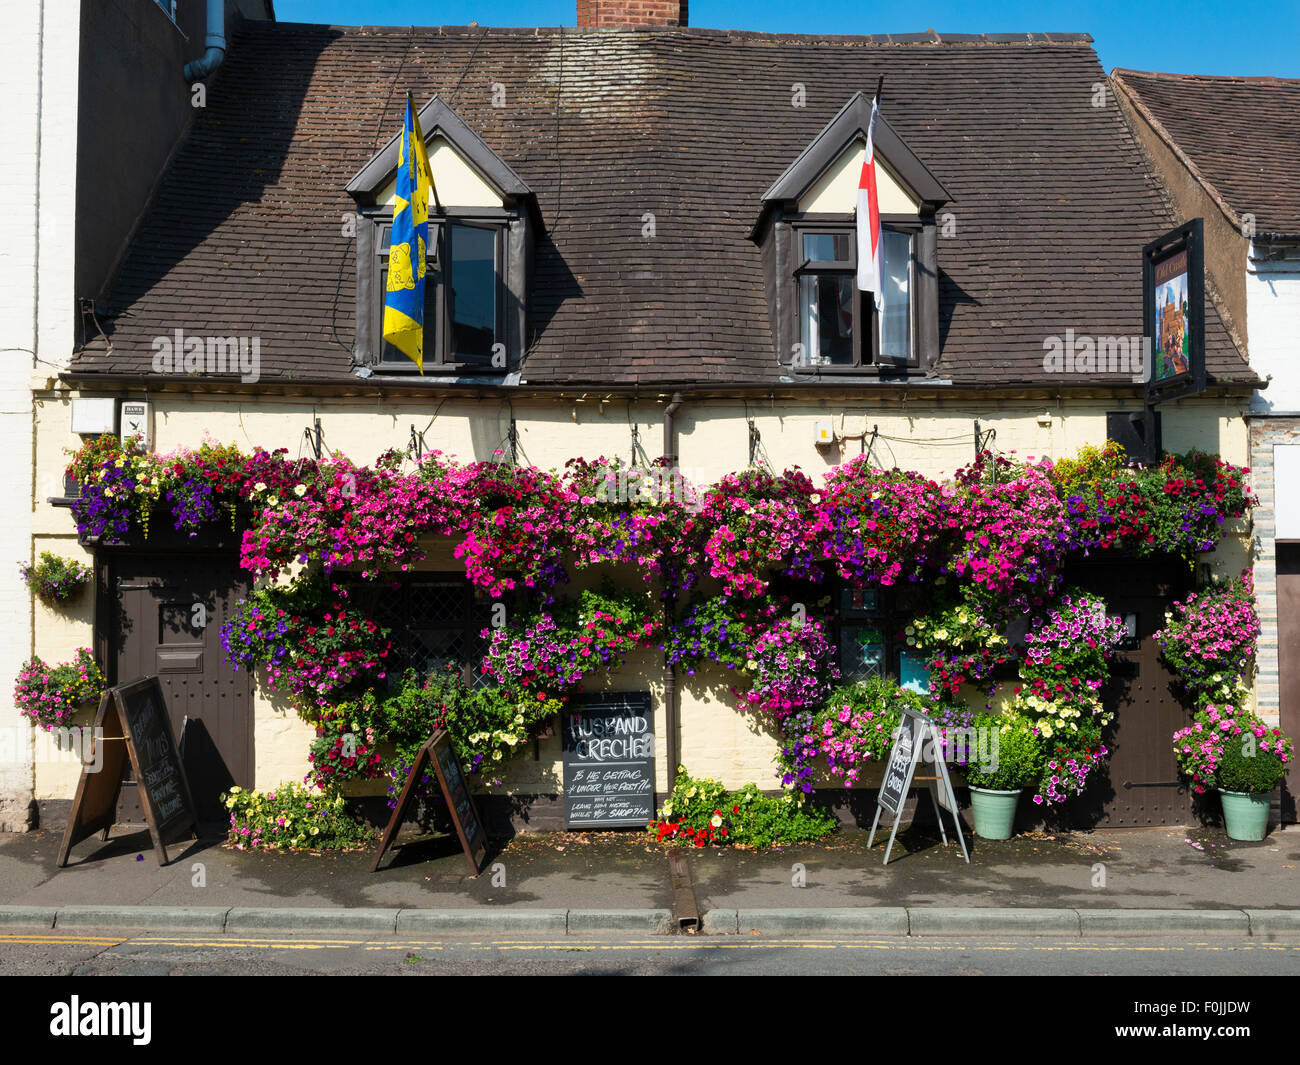 An array of hanging baskets outside the Old Castle pub in Bridgnorth, Shropshire, UK. - Stock Image